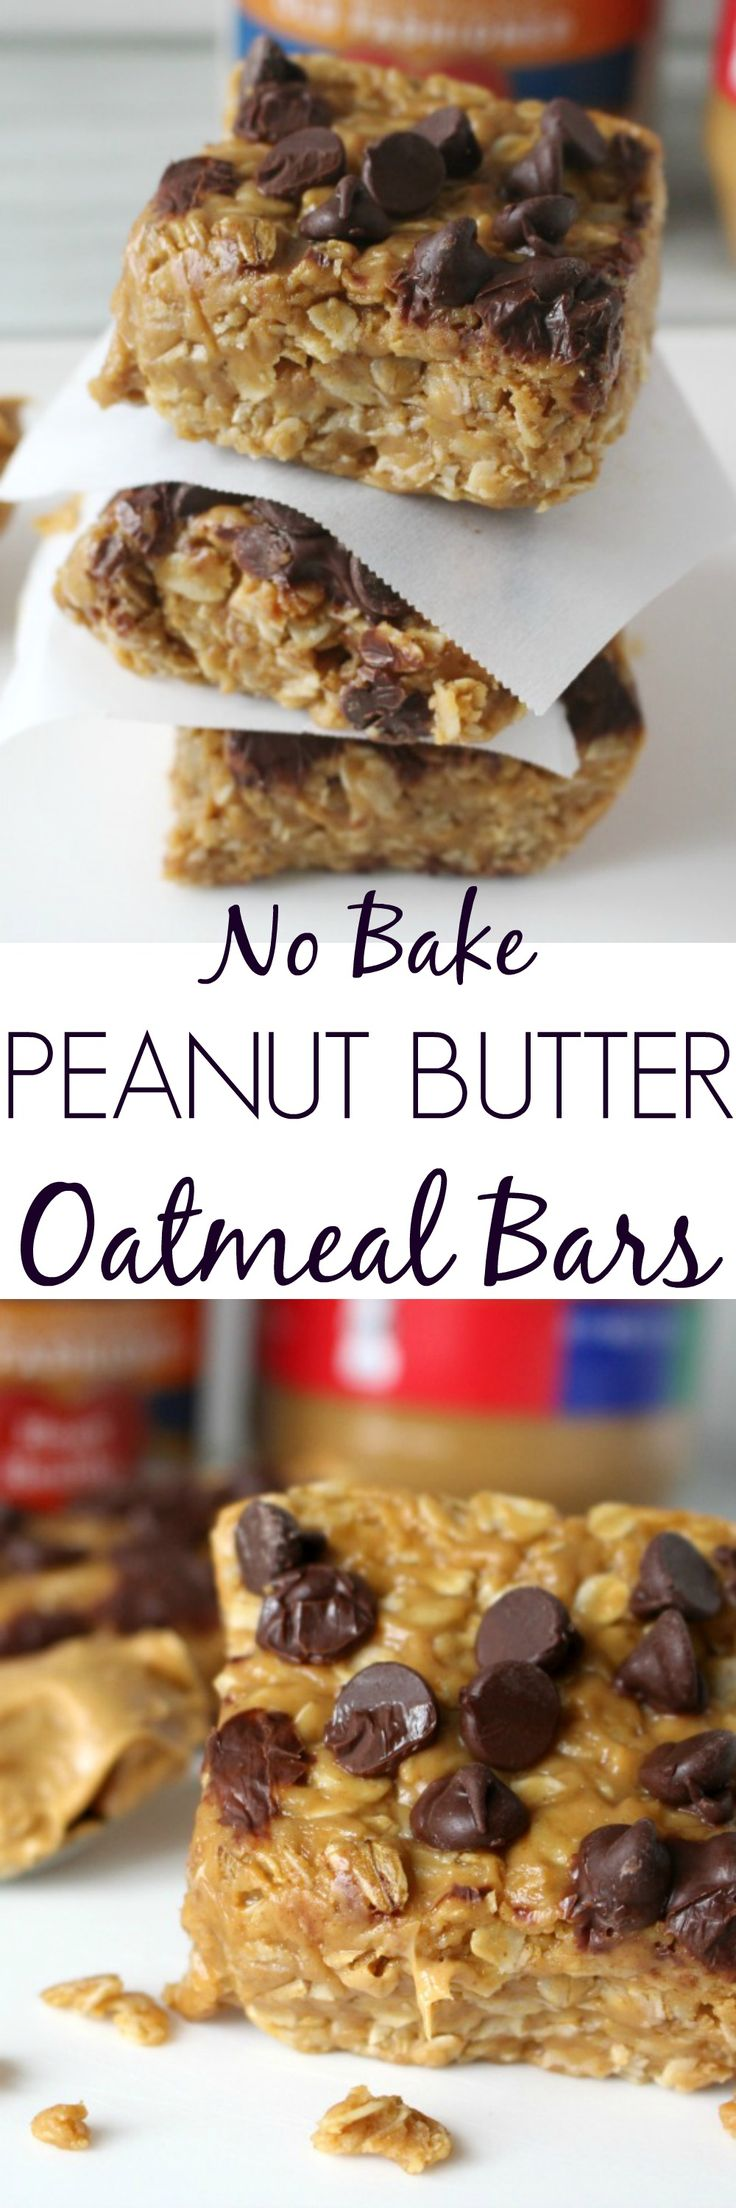 No Bake Peanut Butter Oatmeal Bars  Princess Pinky Girl